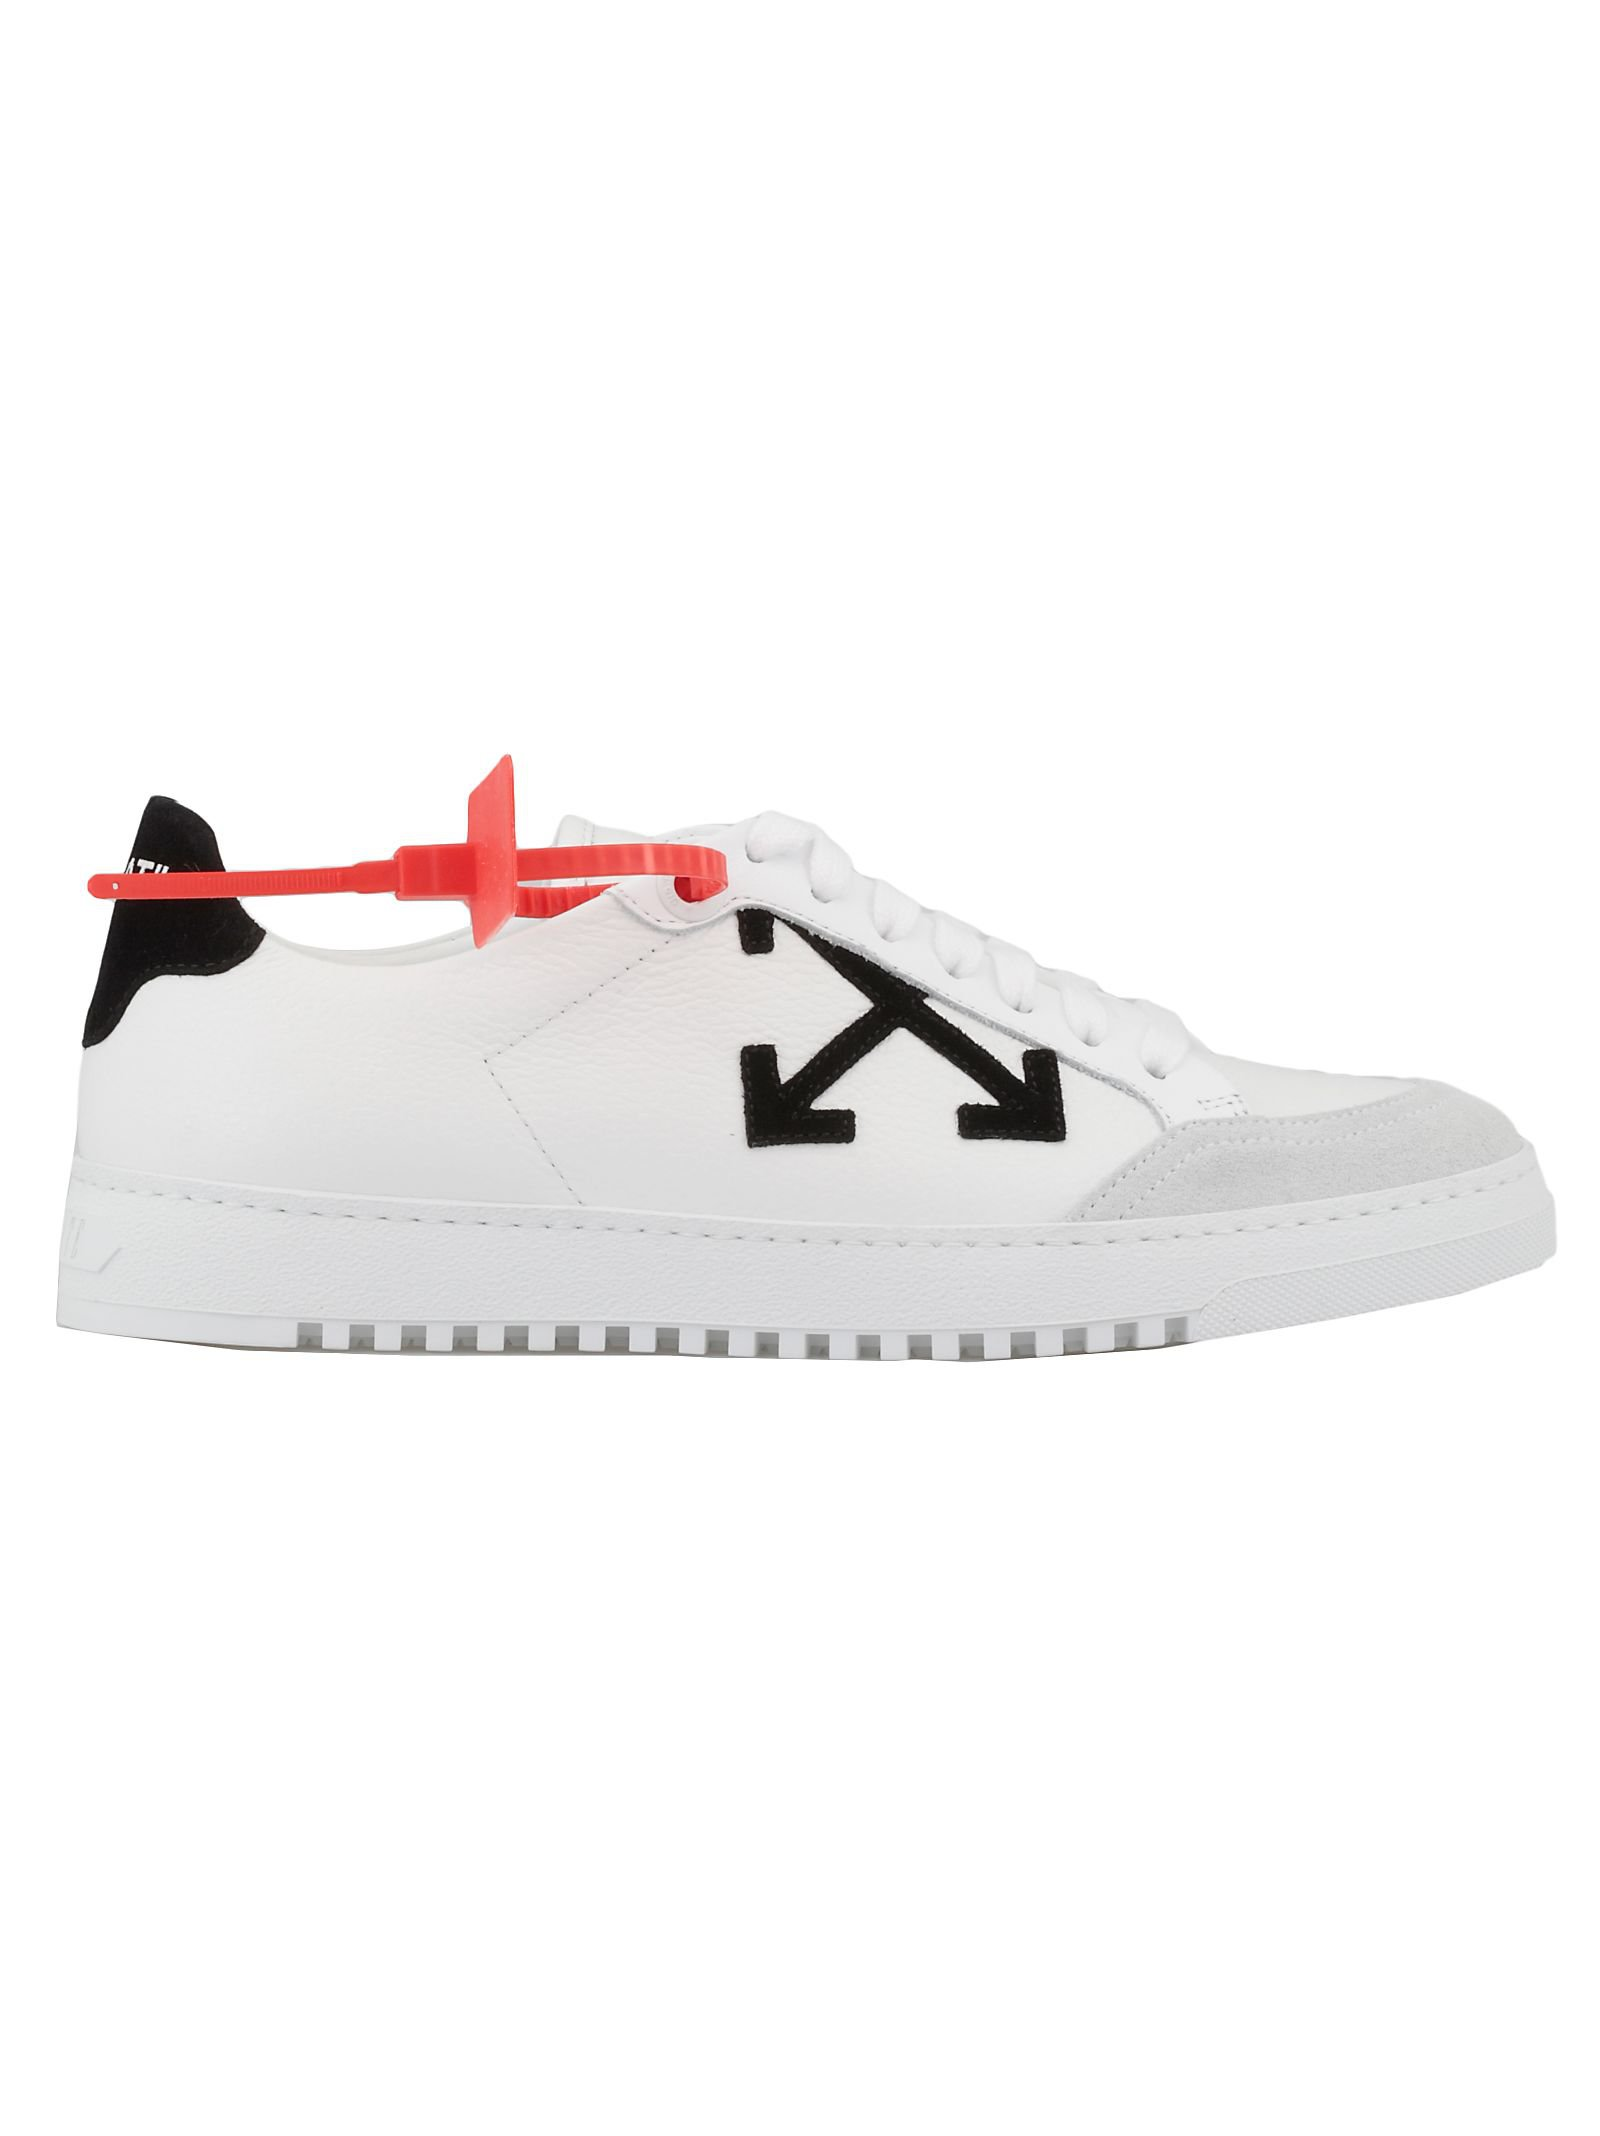 Off-White Carryover Sneaker